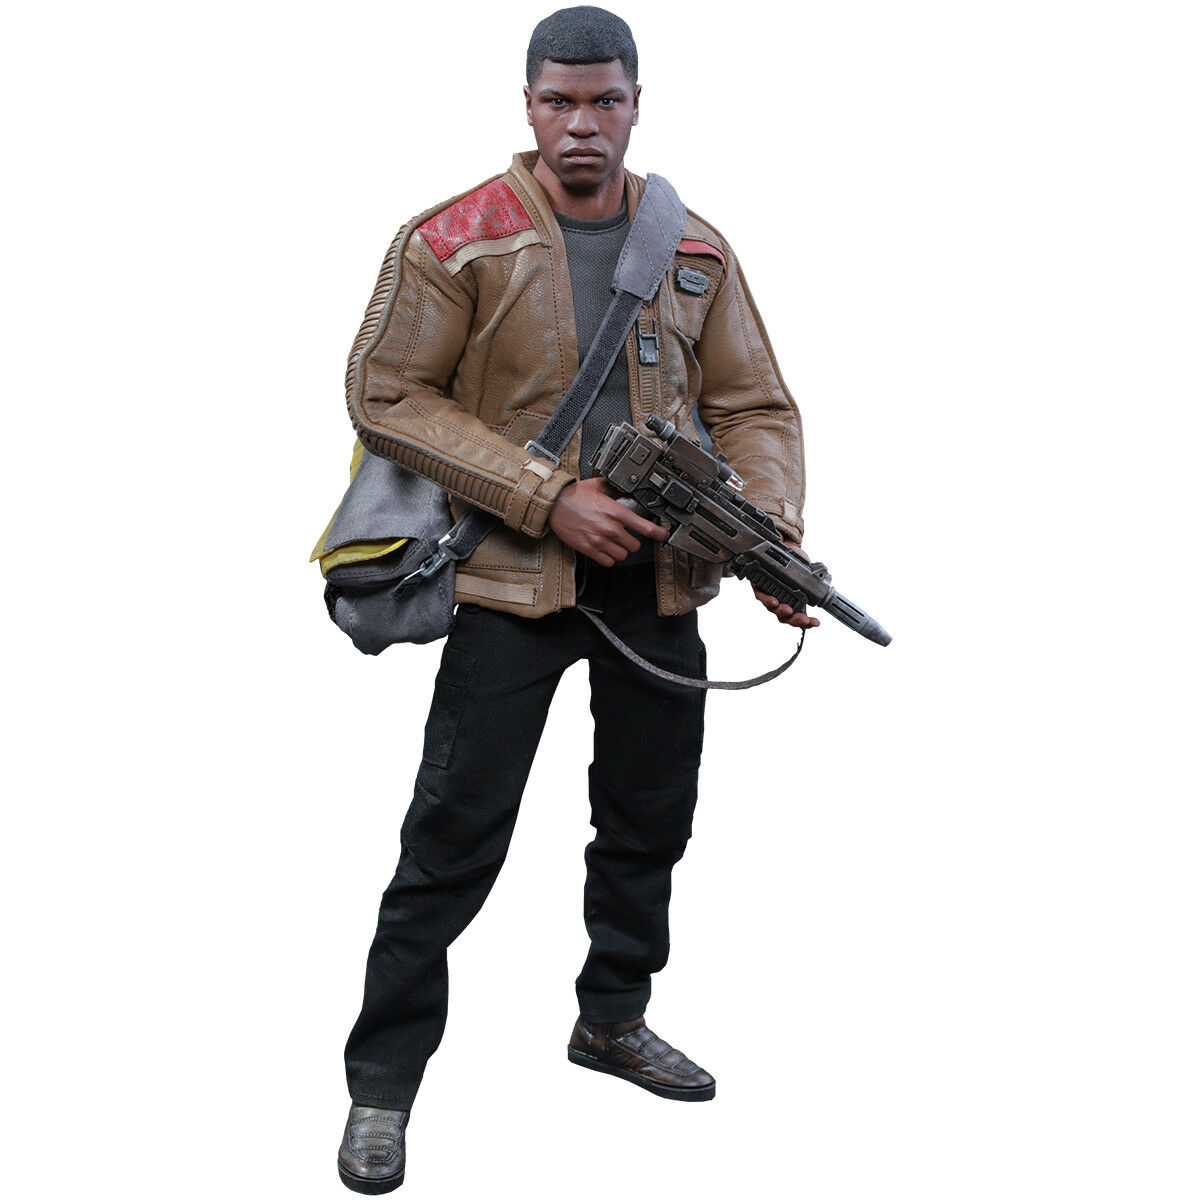 Star Wars Episode VII  The Force Awakens - Finn 1 6th Scale Hot Toys Action Figu